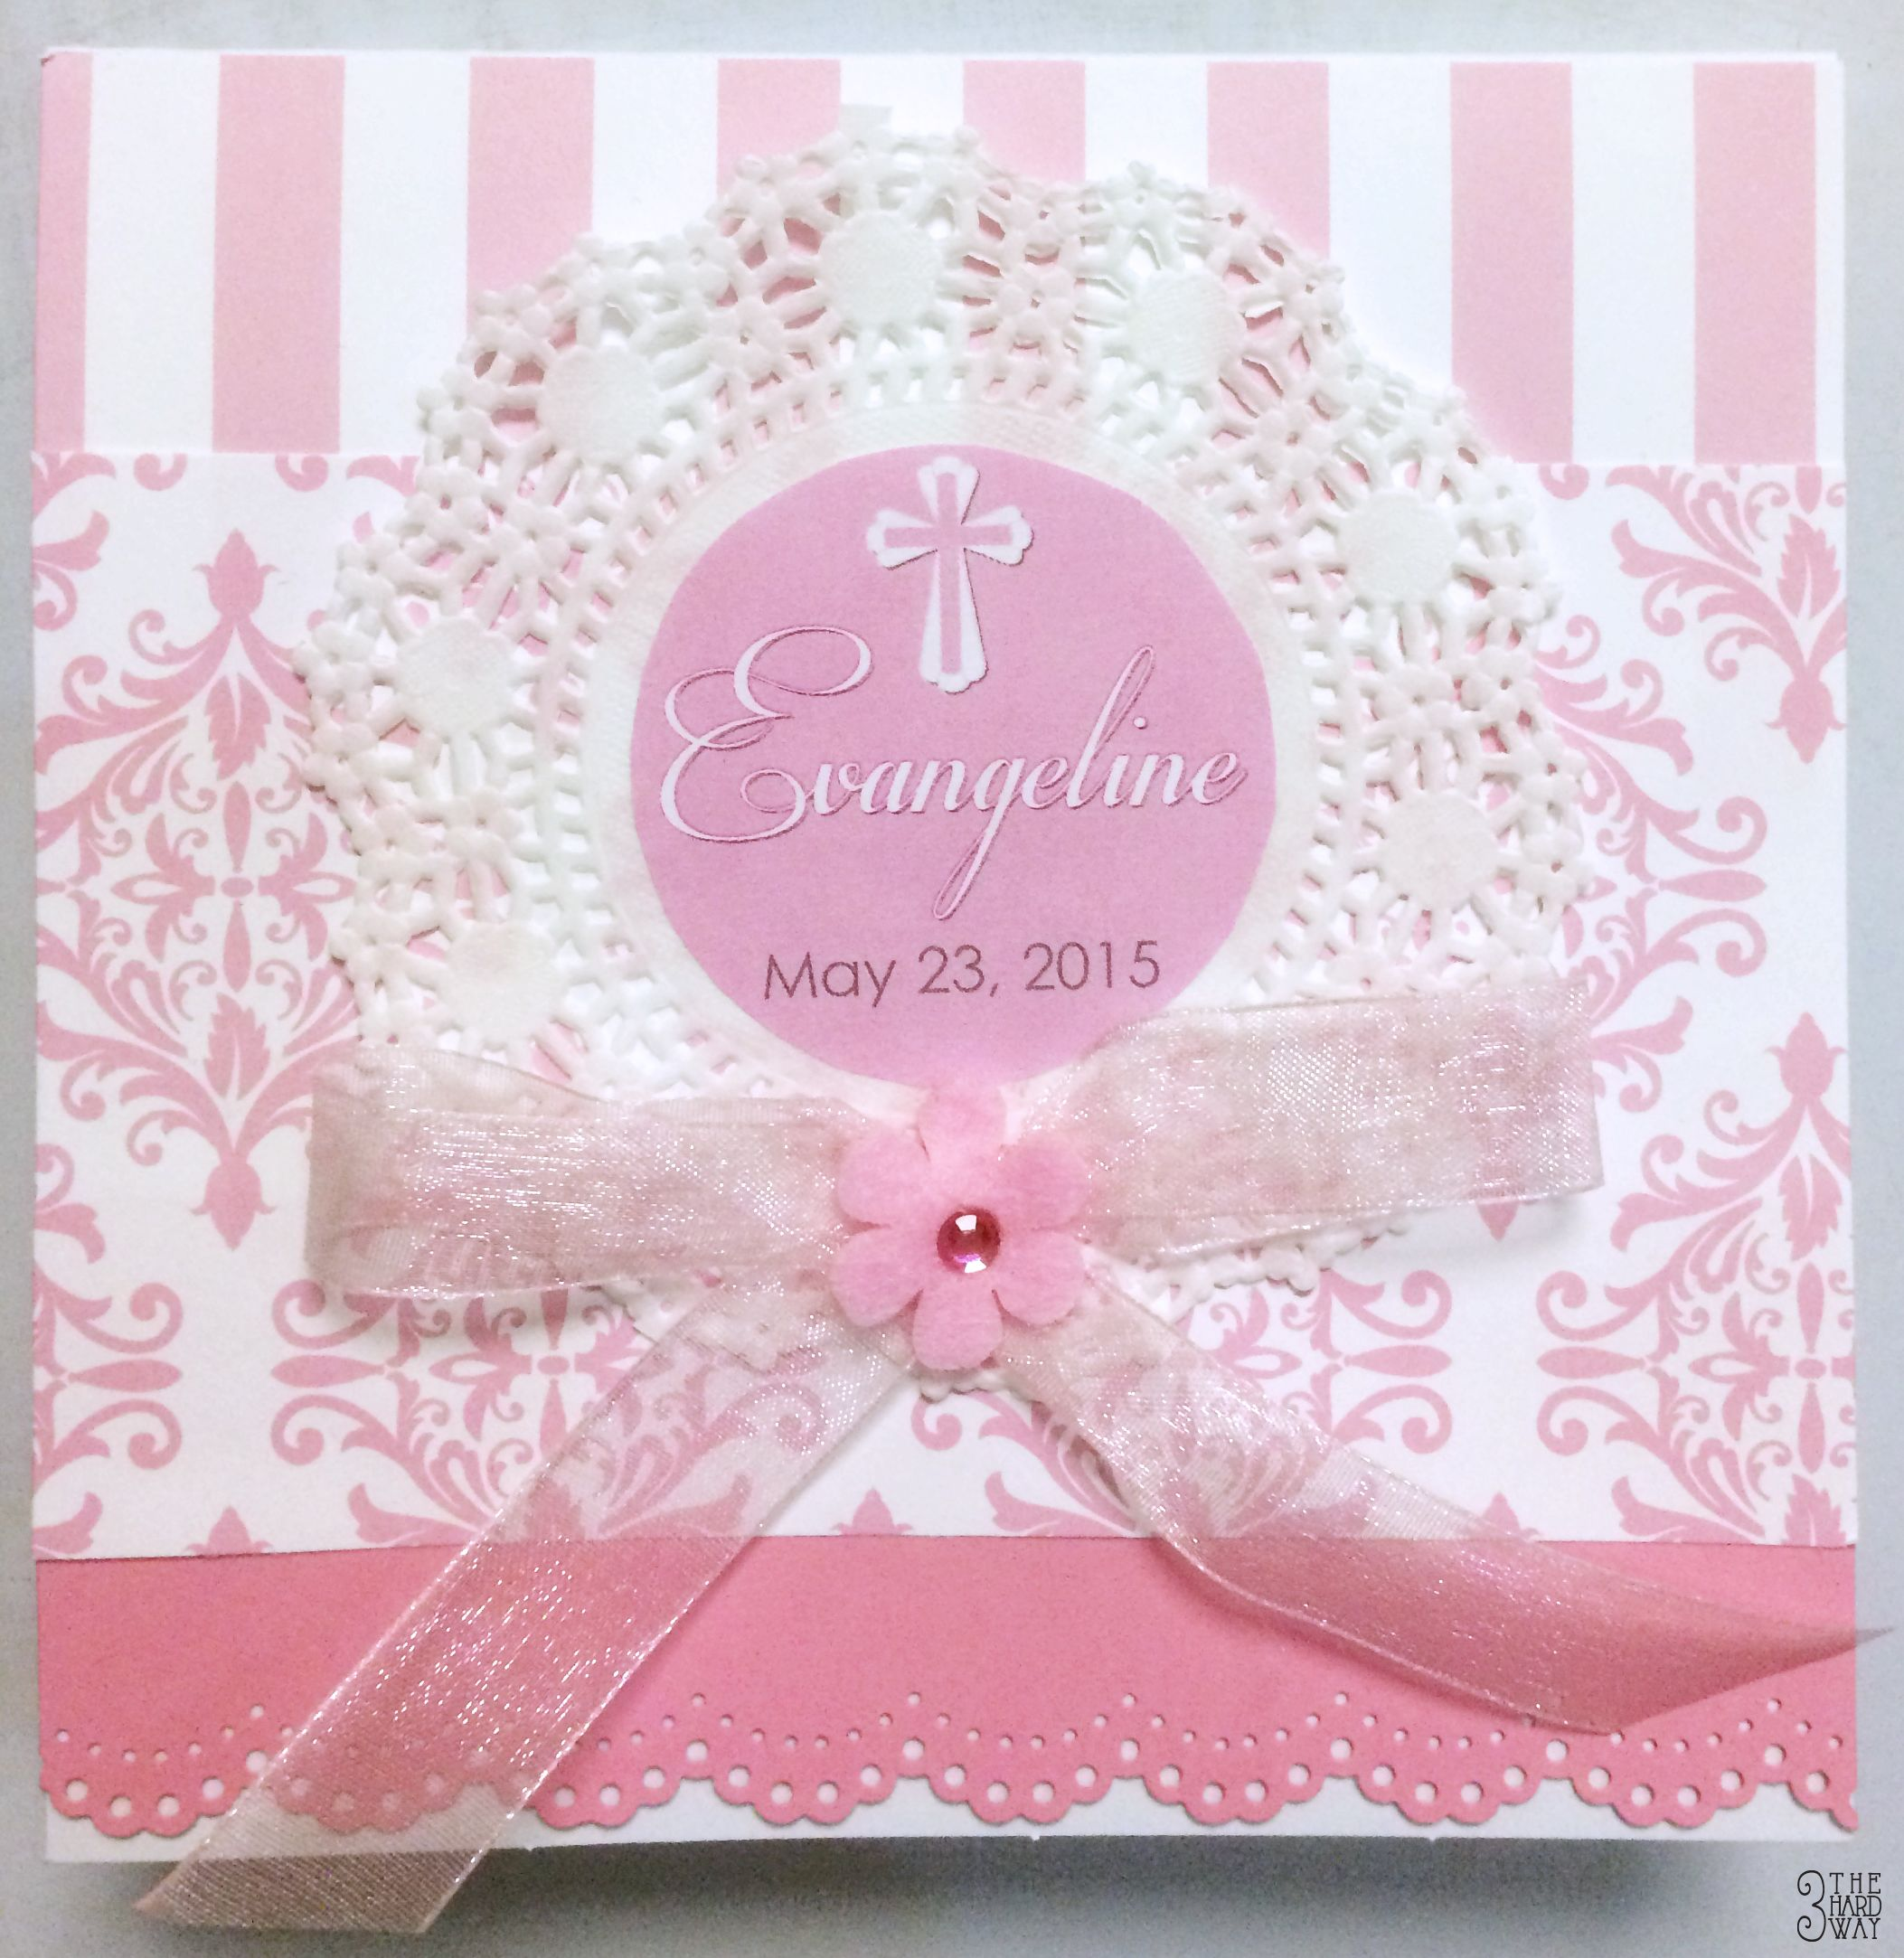 Hand made Invitation to my God Daughter Eva's Baptism. Team Effort We made over 40 using Card stock, Scrapbook Paper, Dollies, Specialty punches, Organza ribbon, double sided tape & glue dots. And lots of trips to Michael's :)